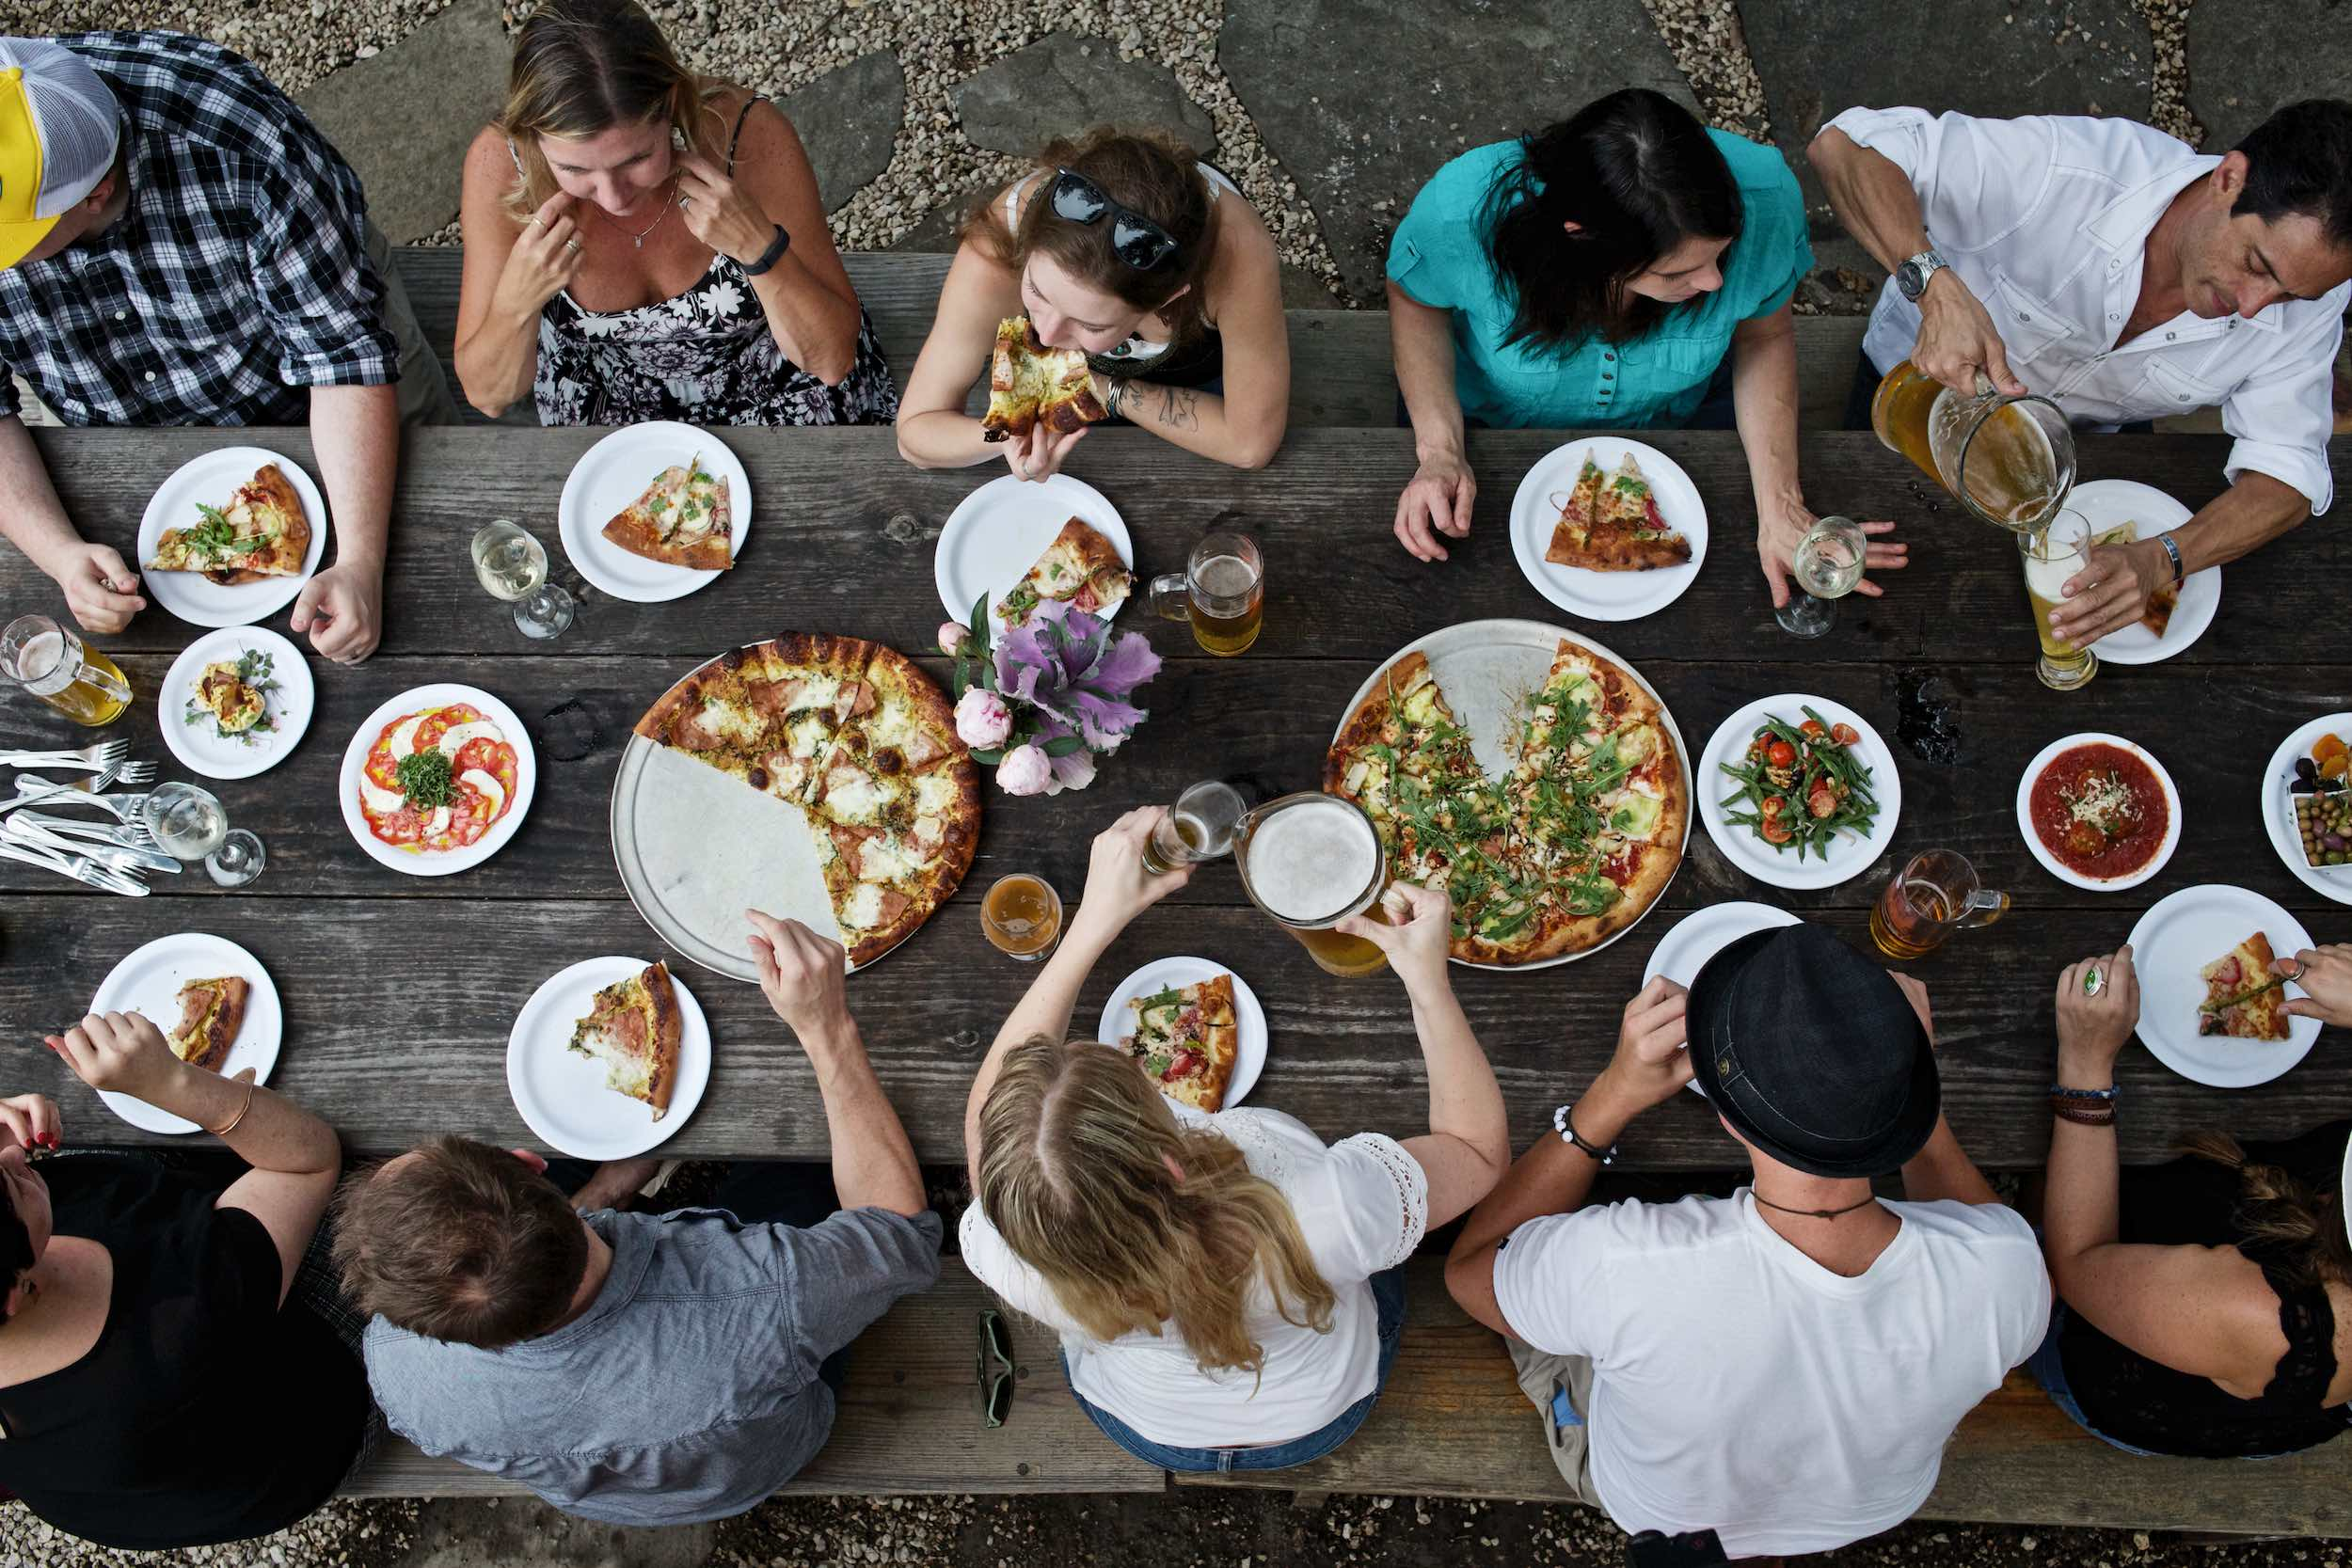 Jody Horton Photography - Friends gather around wood picnic table to eat pizza and drink beer.